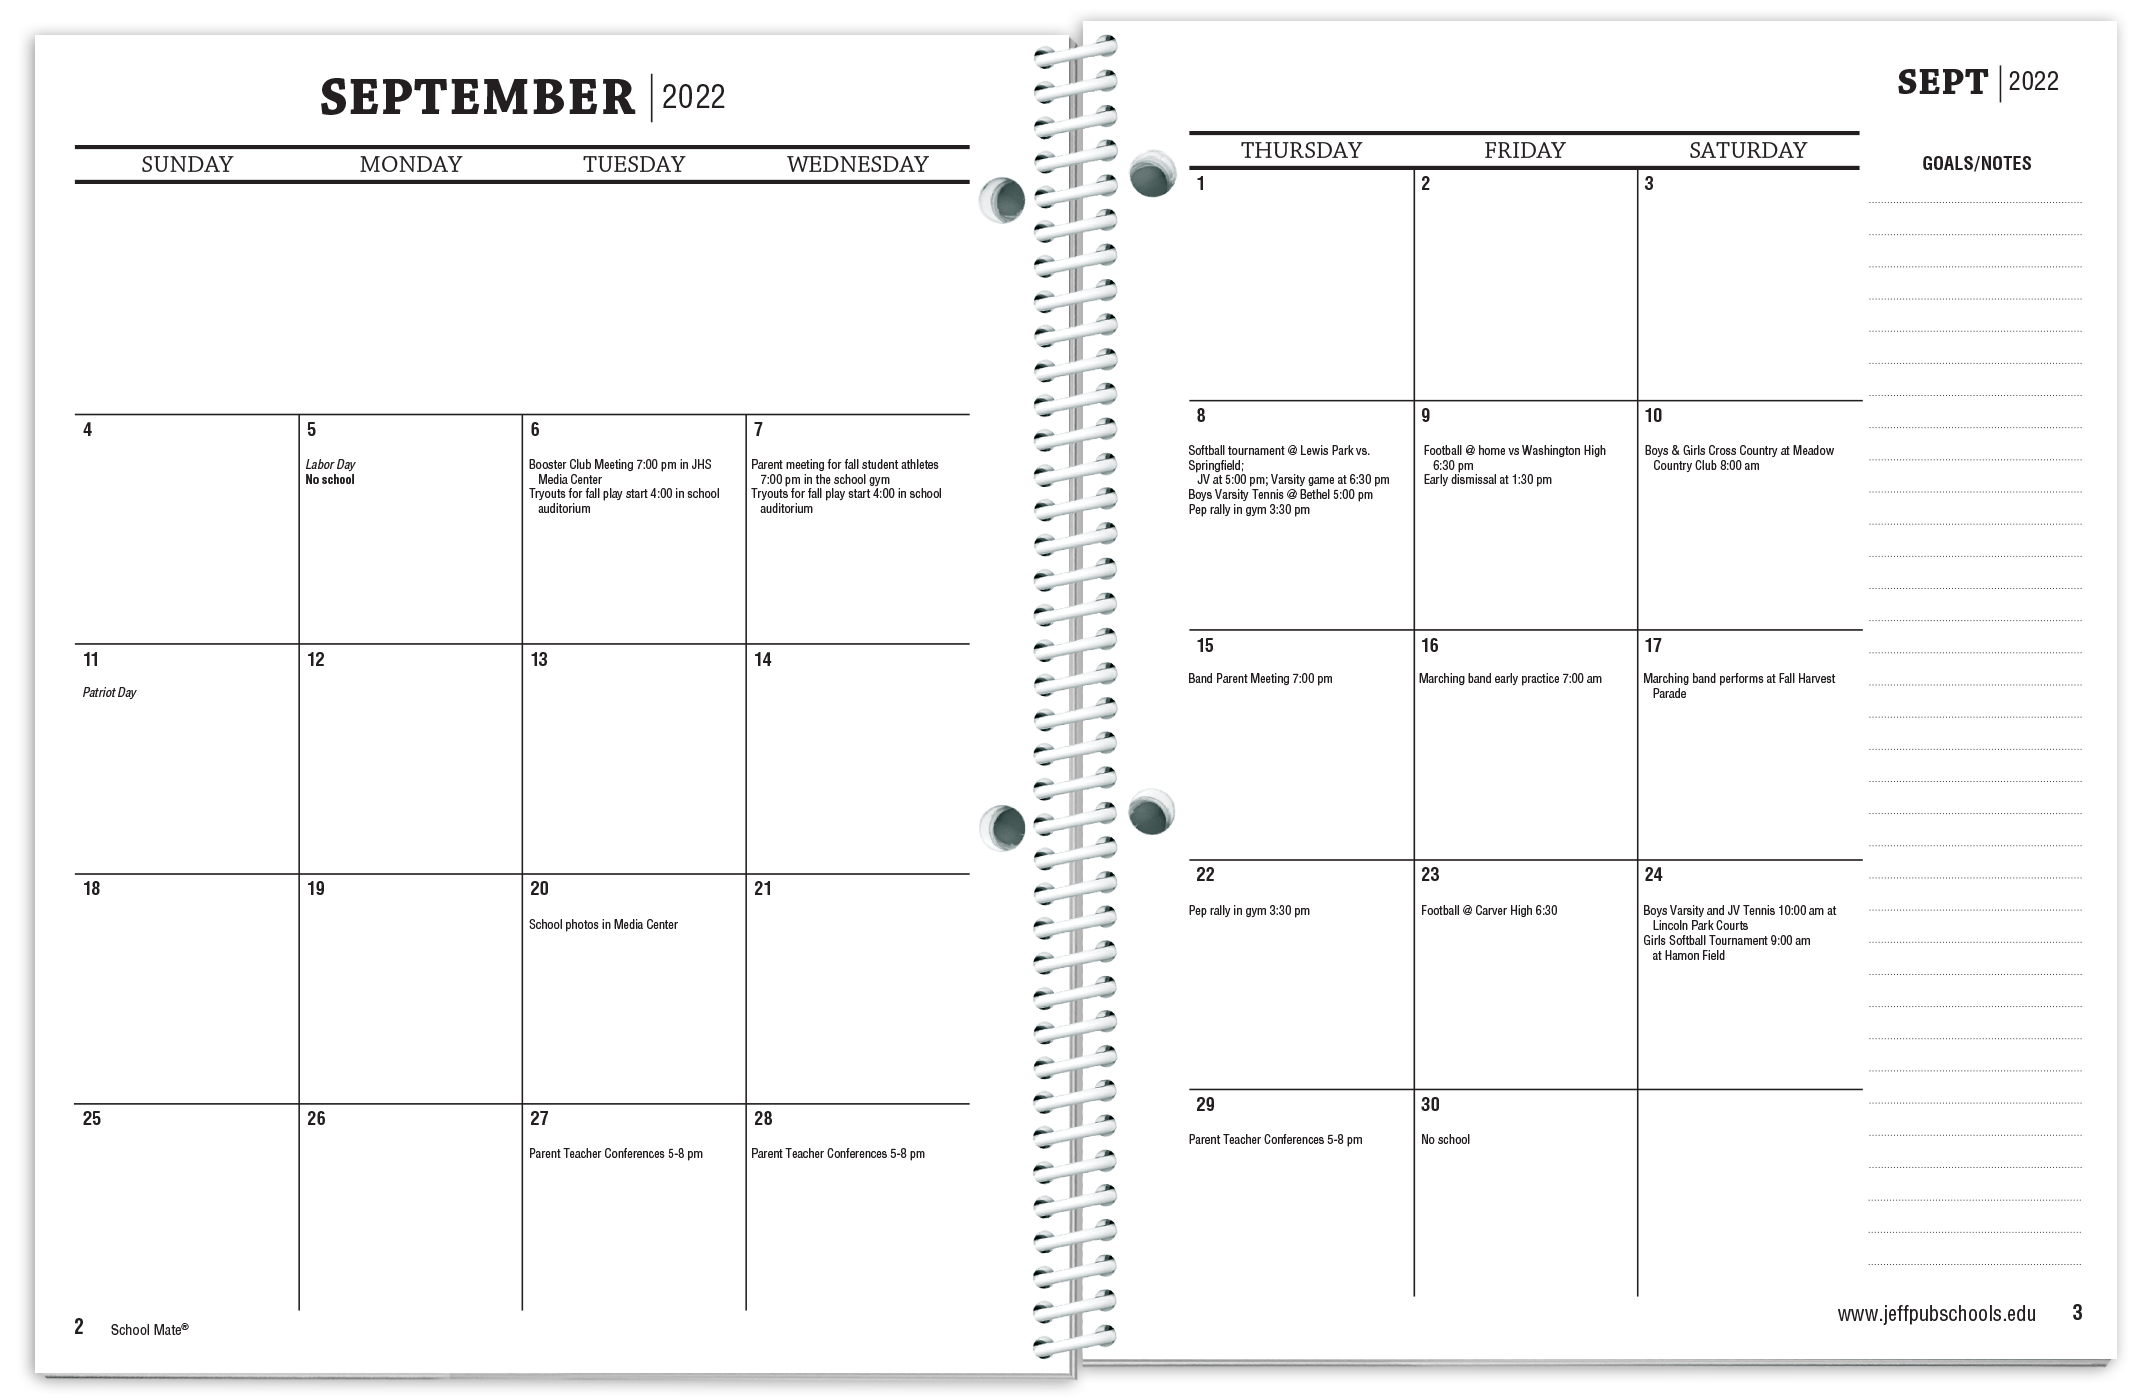 Sample Agenda Planner | Student Planners Features Pricing School Mate